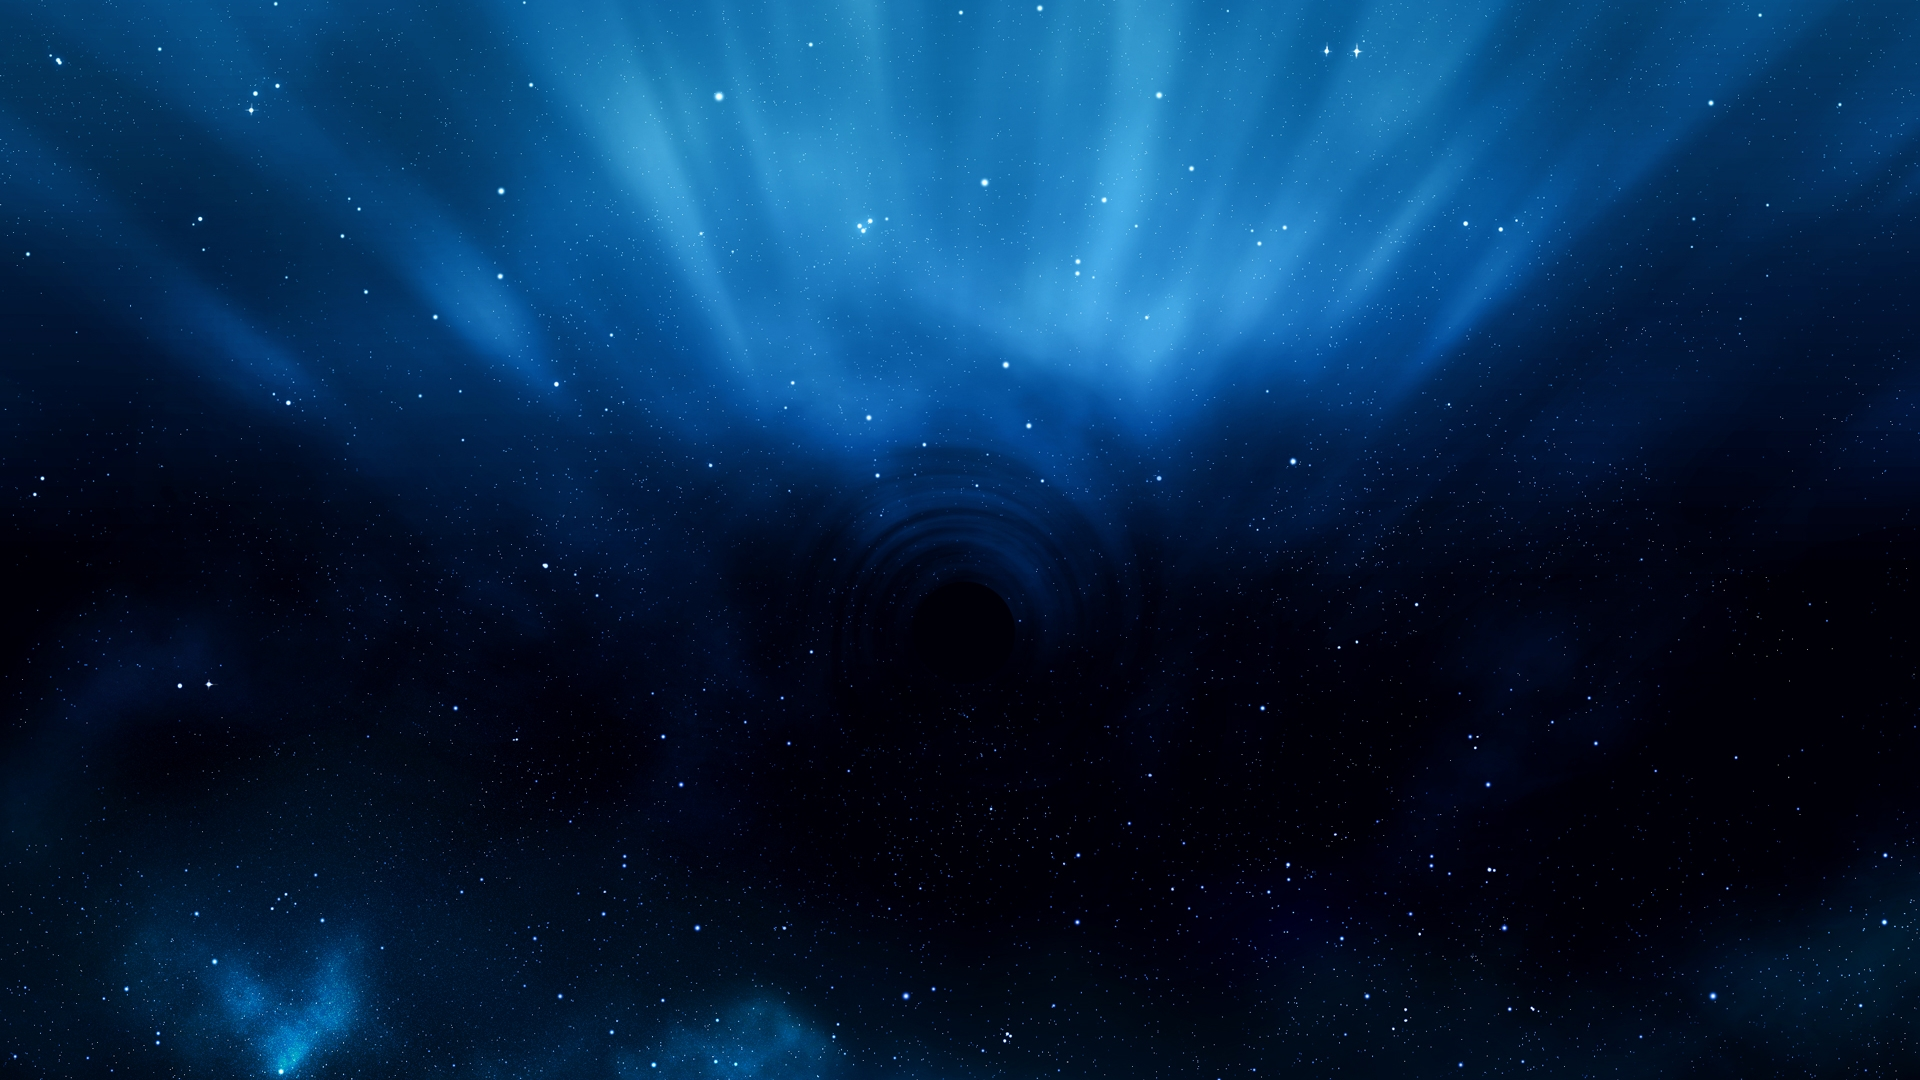 Cosmic space Abstract 1920x1080 highreshdwallpaperscom 1920x1080